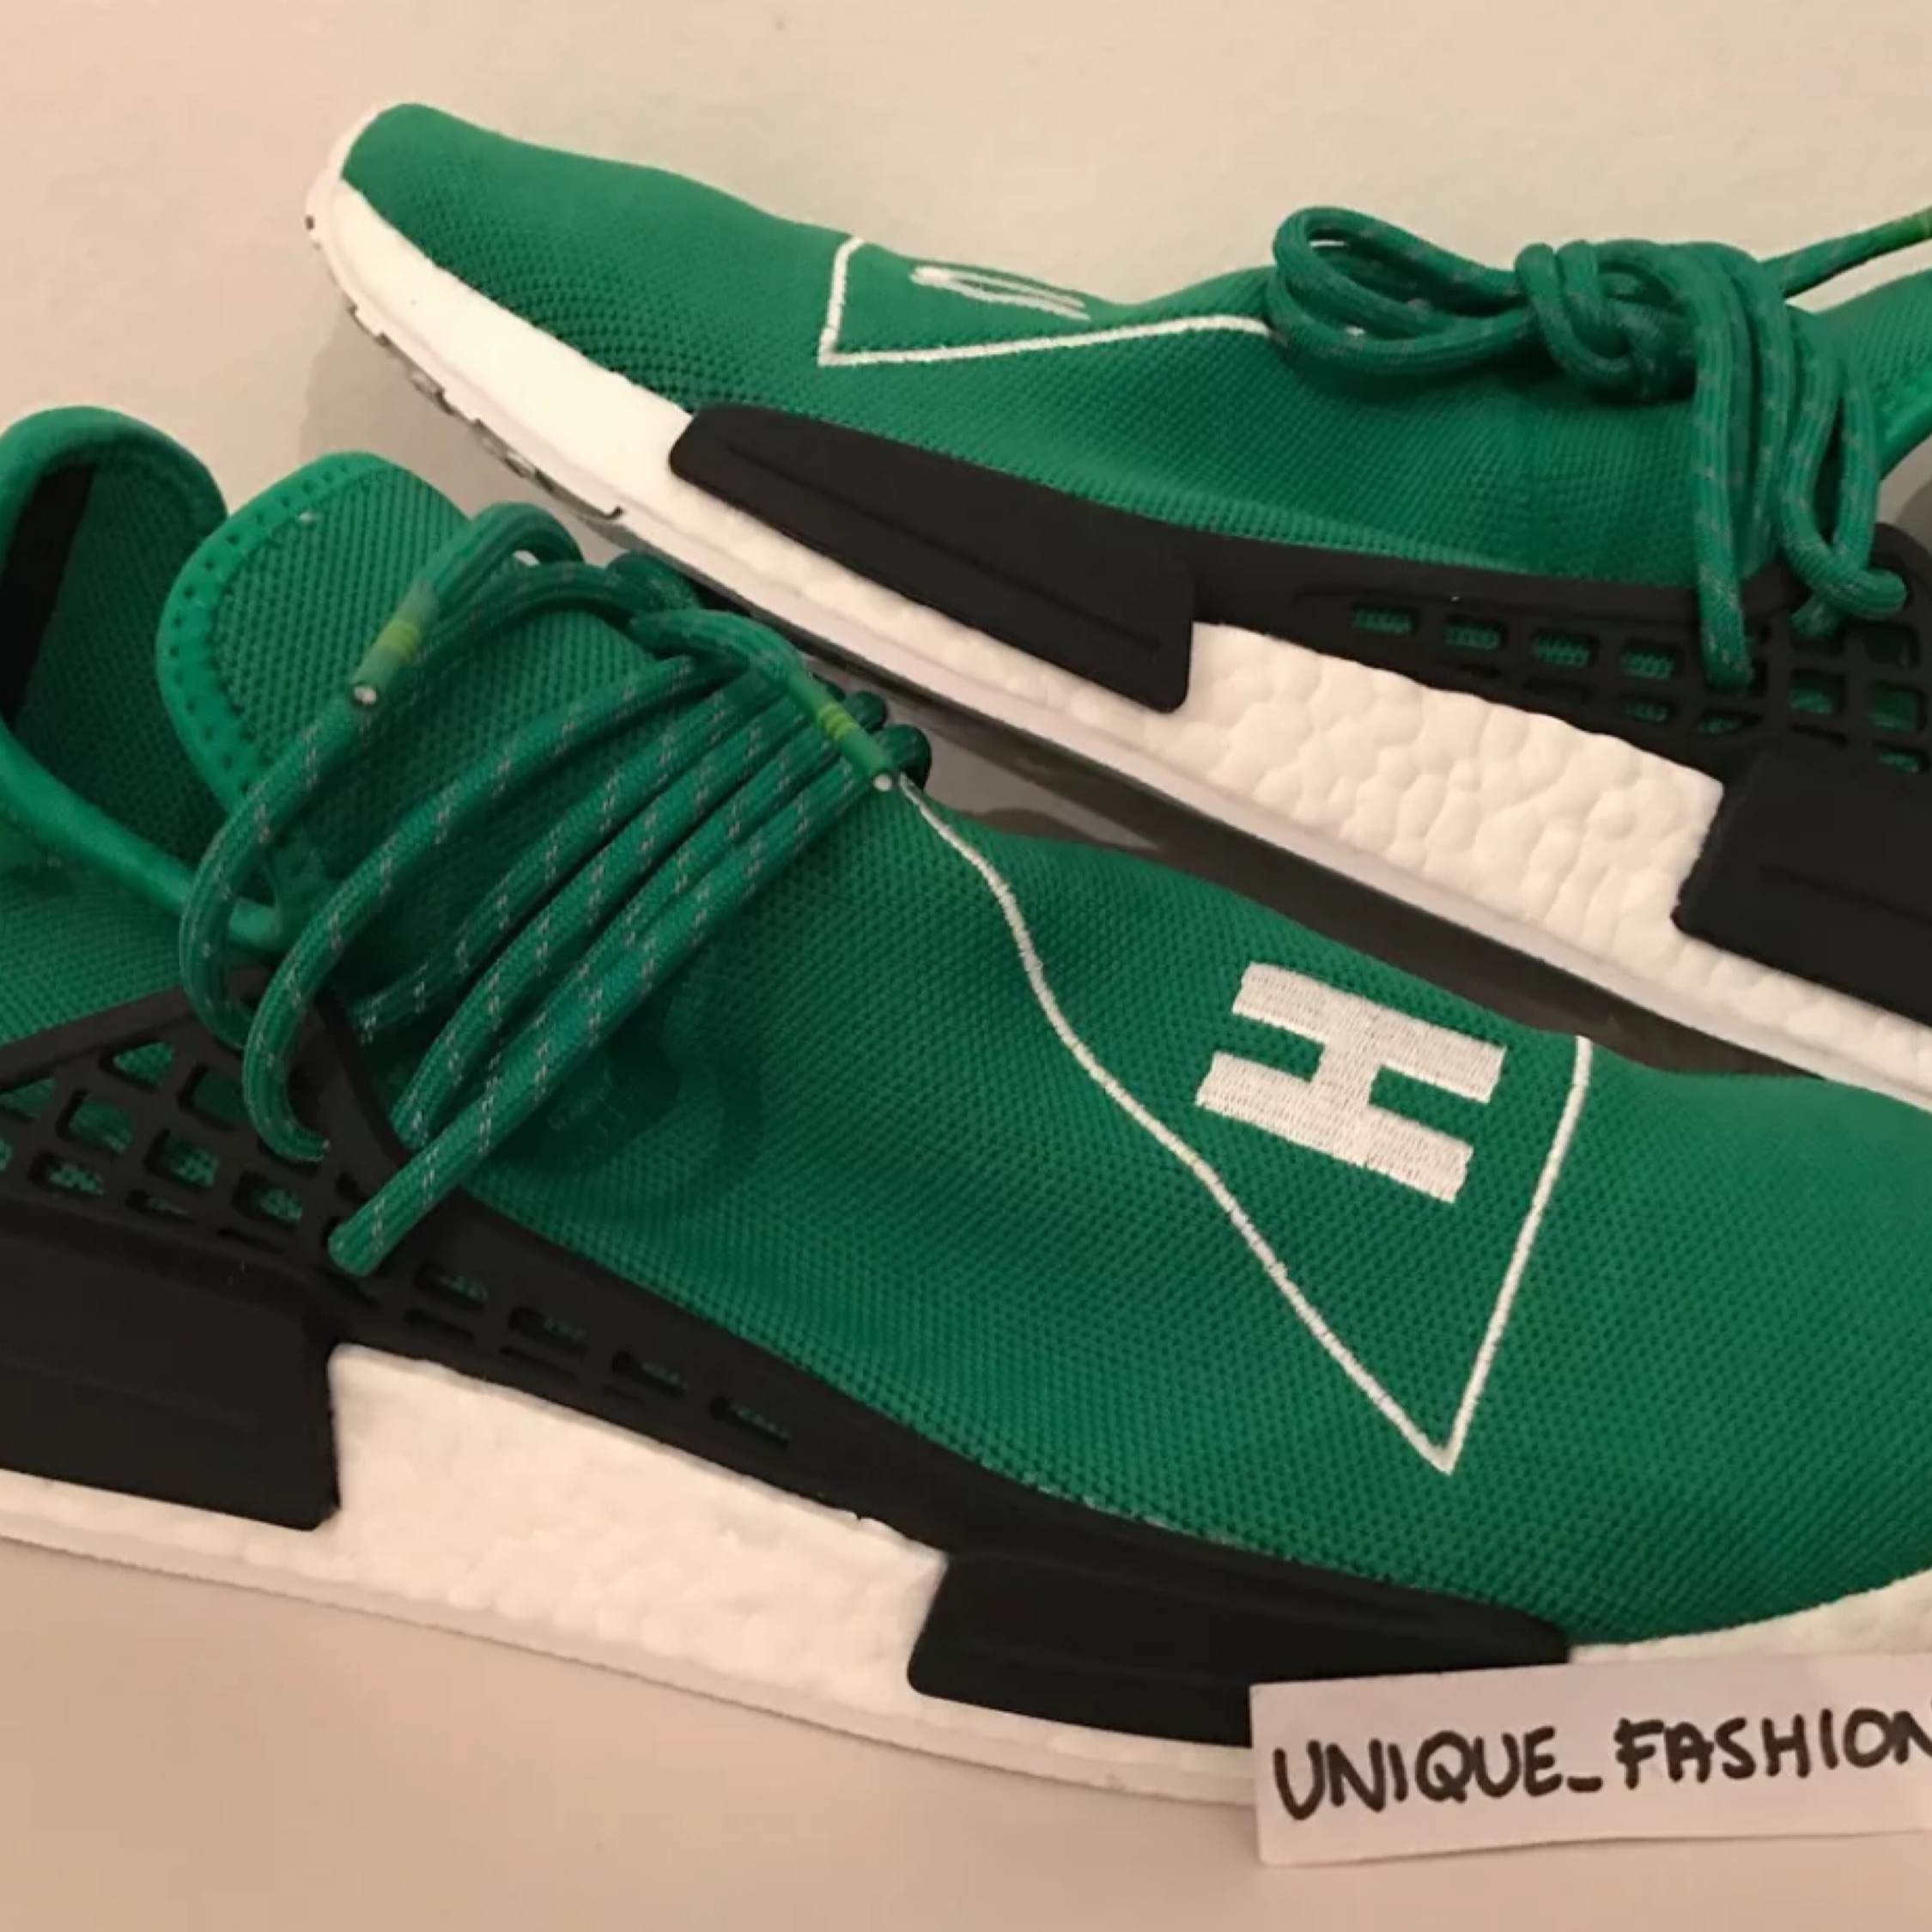 newest 0e6a2 3dfd5 Adidas Nmd Human Race Green White Boost